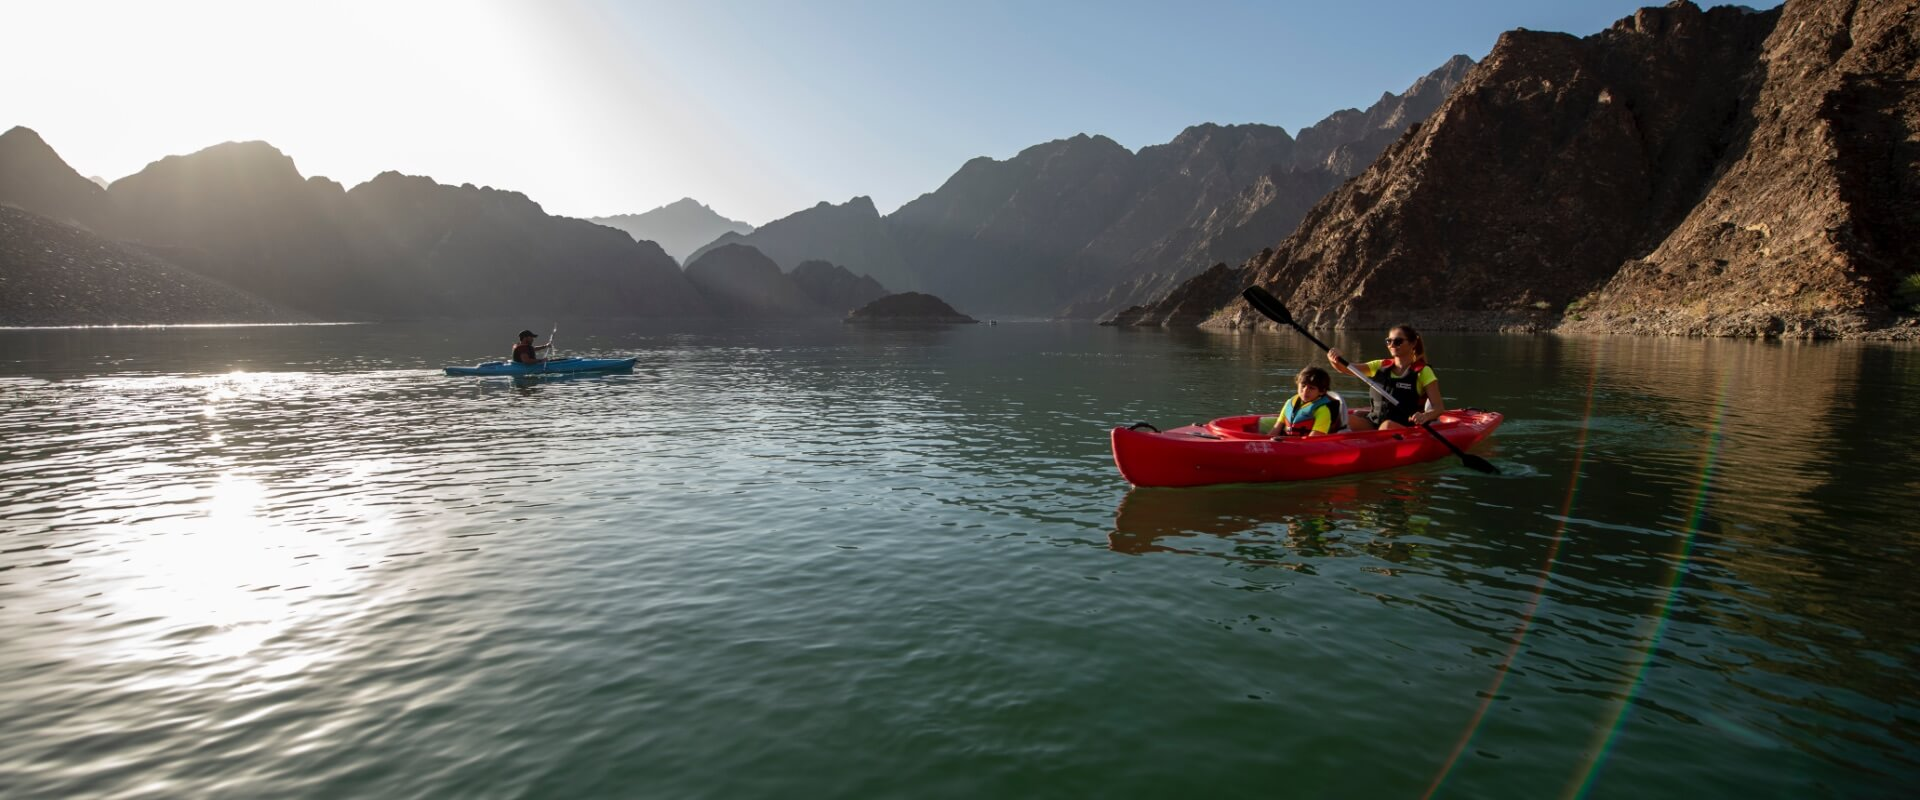 Visit-Hatta-Boating-explore